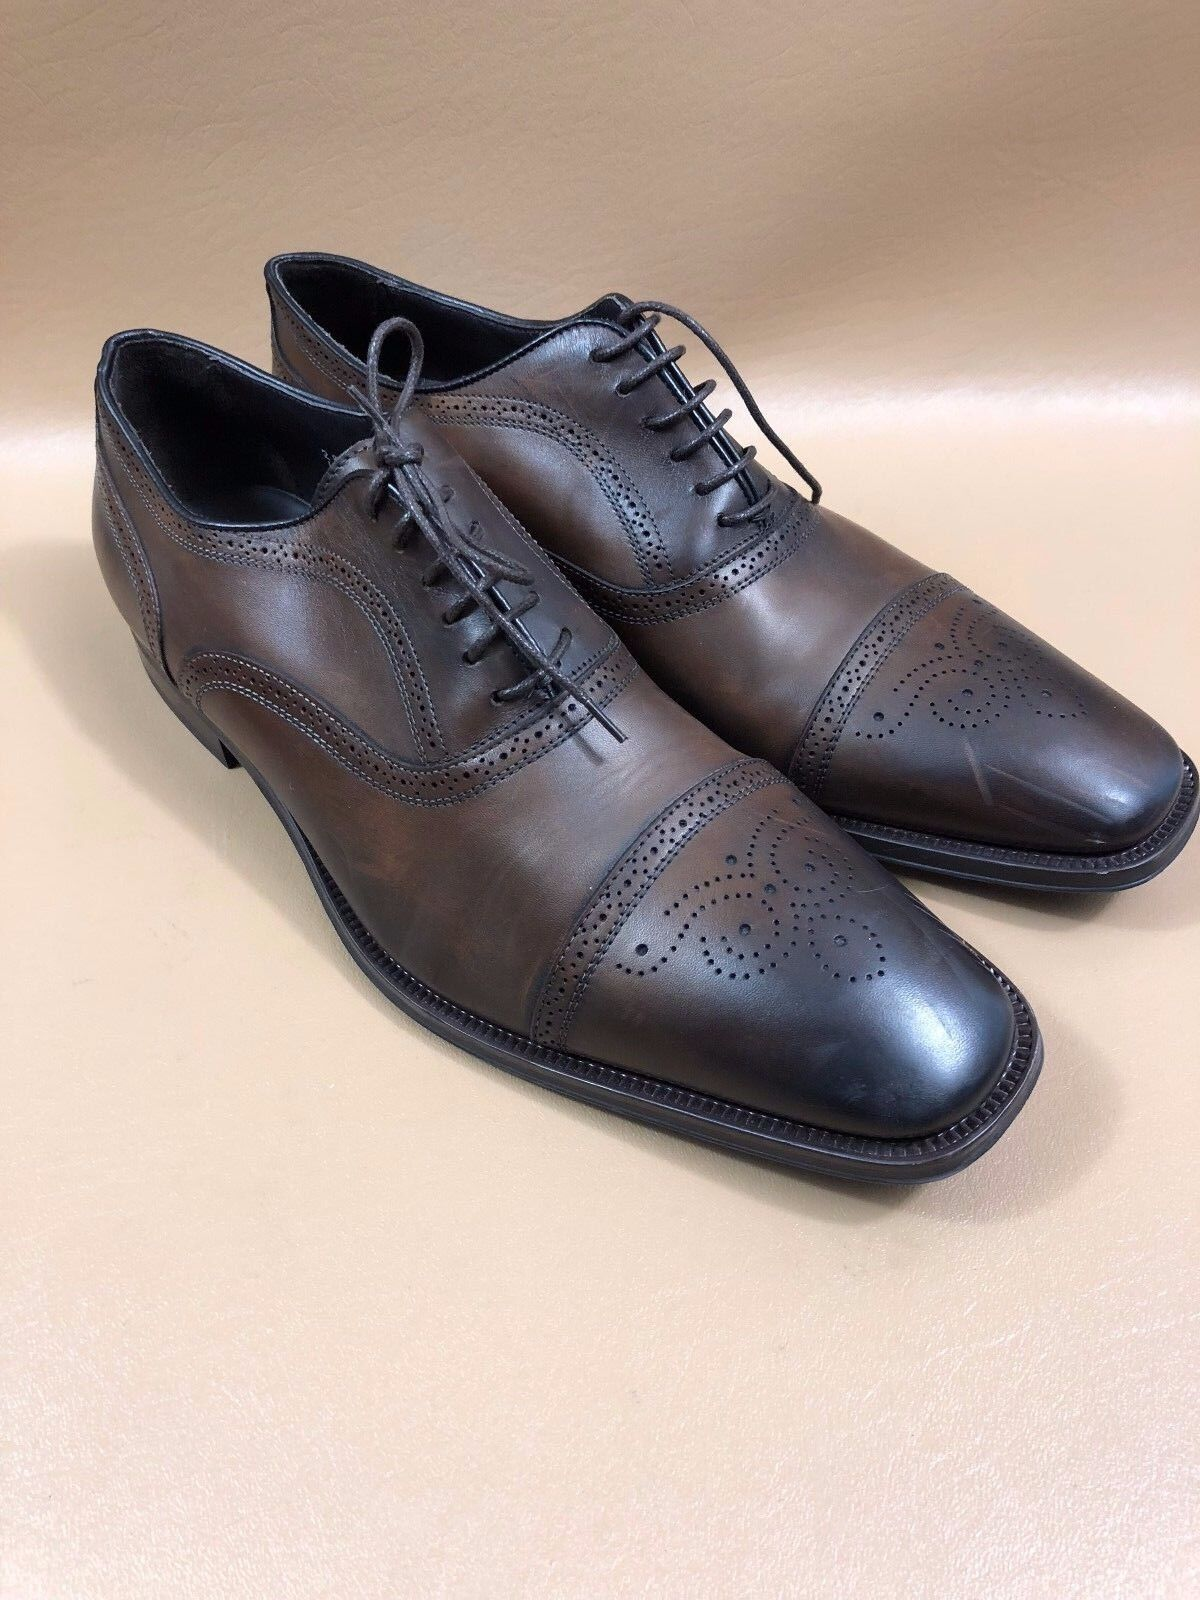 To Boot New York Brown Oxfords Shoes Size 11